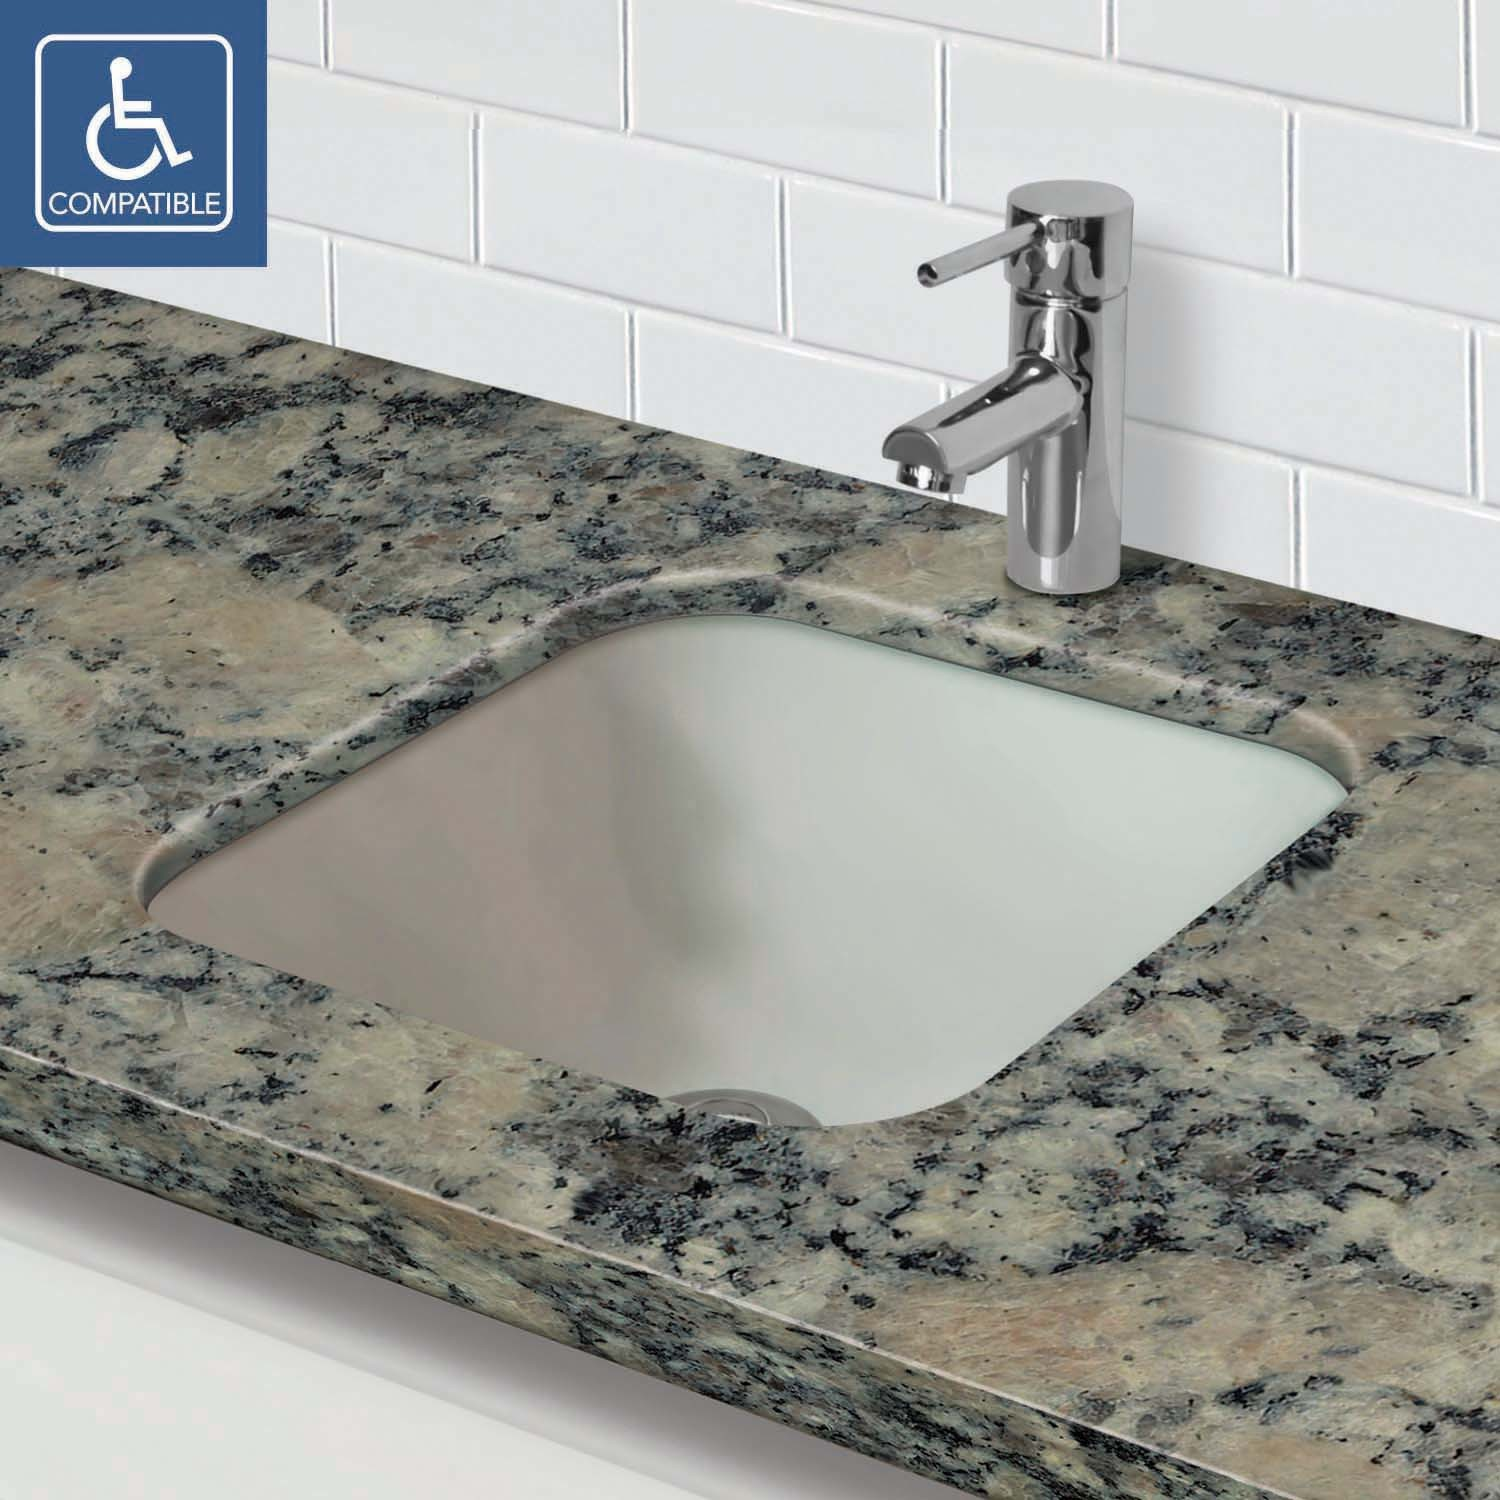 Glass undermount bathroom sinks